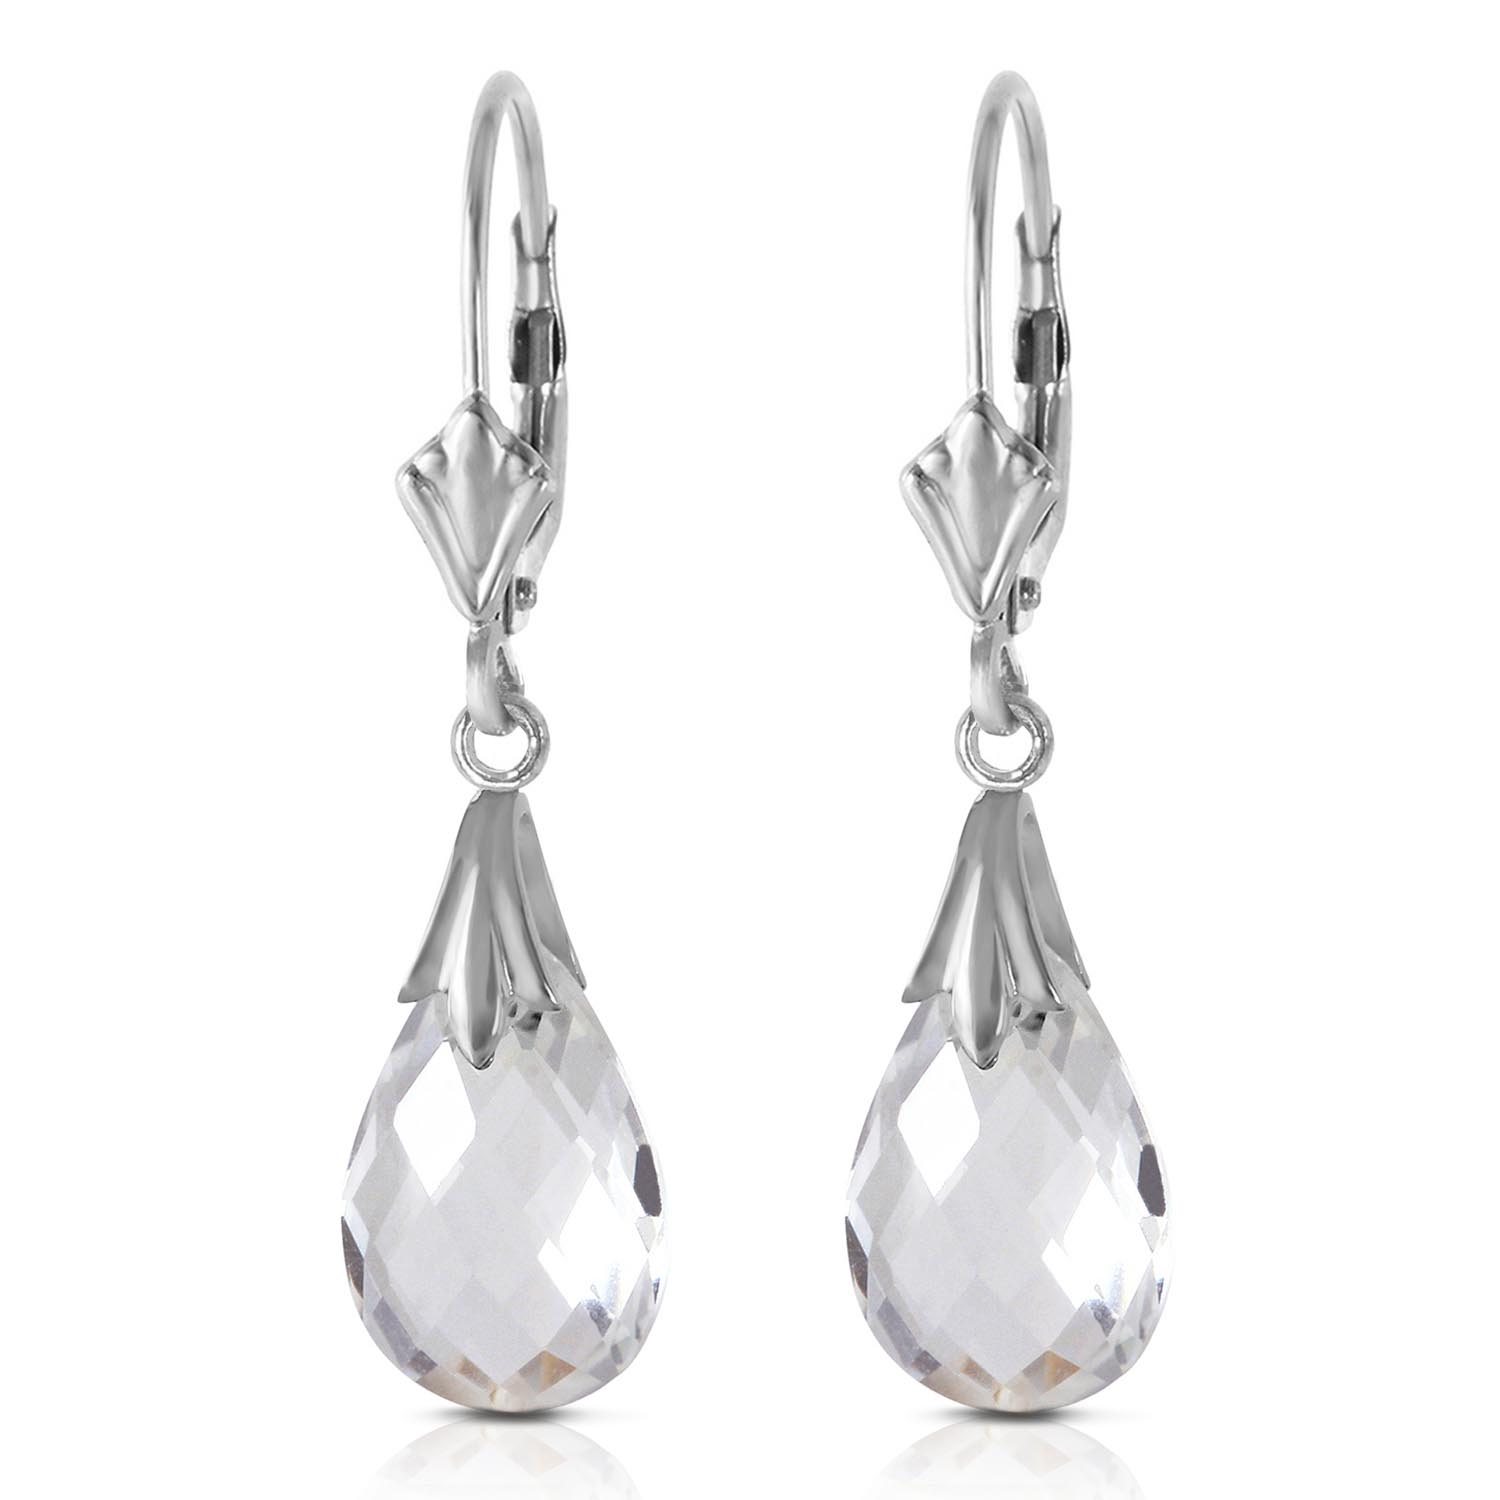 Bargain White Topaz Droplet Briolette Earrings 6.0ctw in 9ct White Gold Stockists